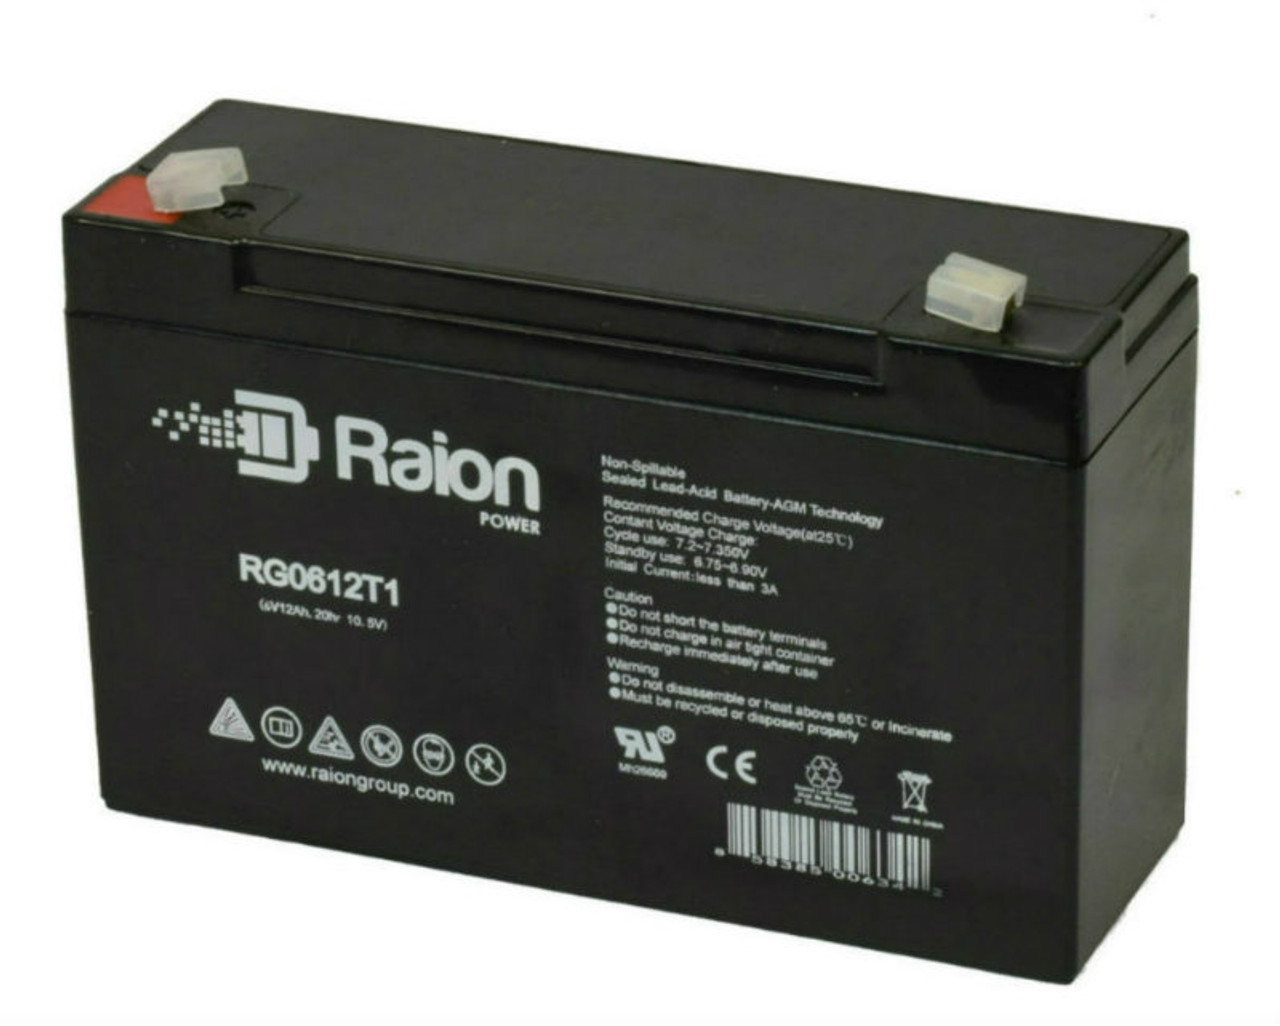 Raion Power RG06120T1 Replacement Battery Pack for Sure-Lites 12IND210 emergency light